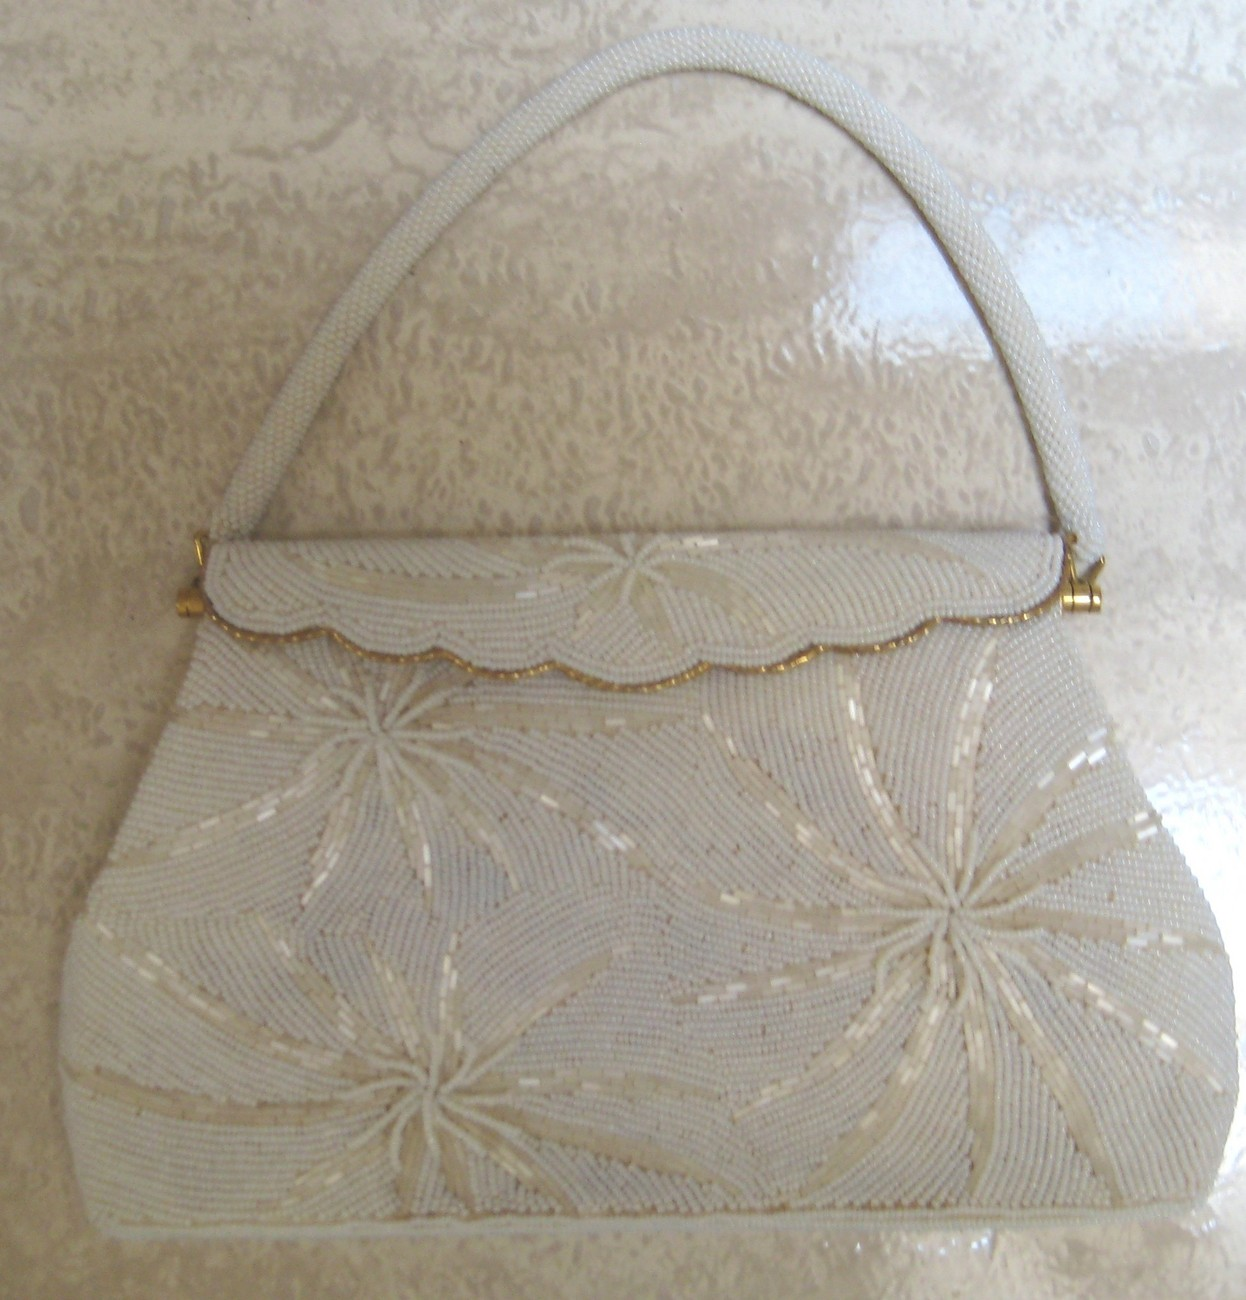 VINTAGE HAND BEADED EVENING BAG / BRIDAL BAG- EXC COND.